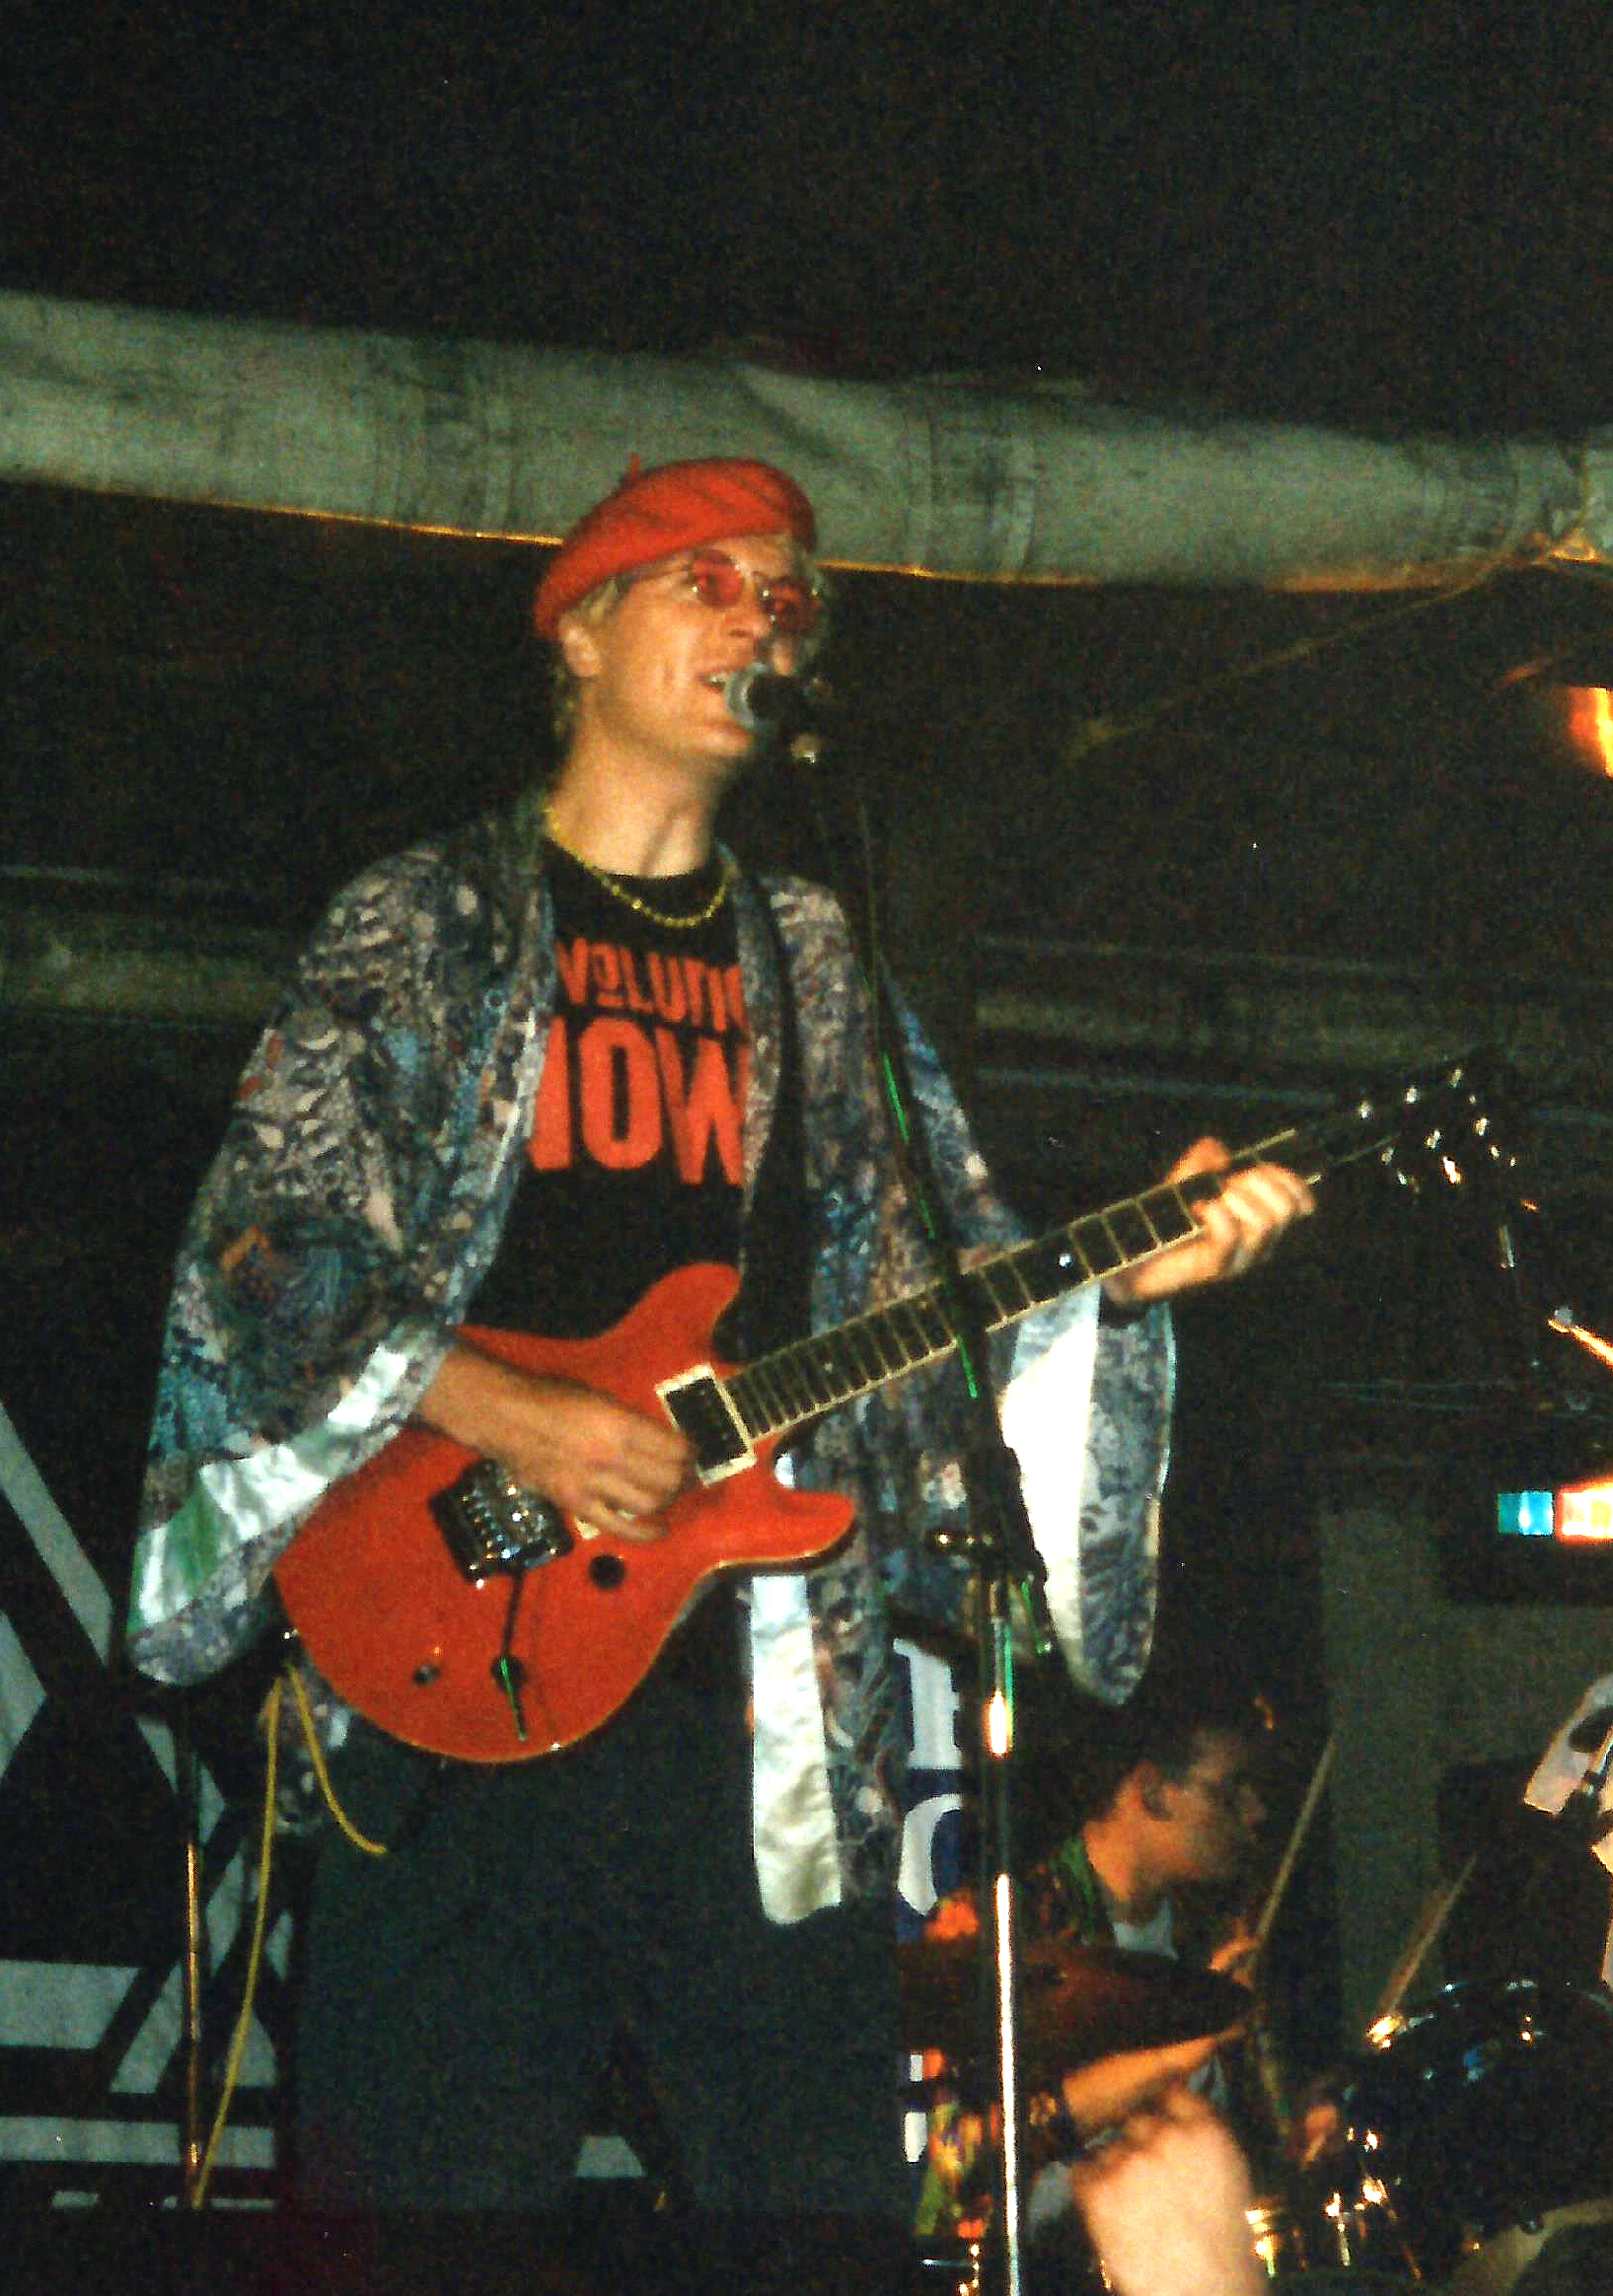 http://upload.wikimedia.org/wikipedia/commons/f/fd/CaptainSensible02.jpg